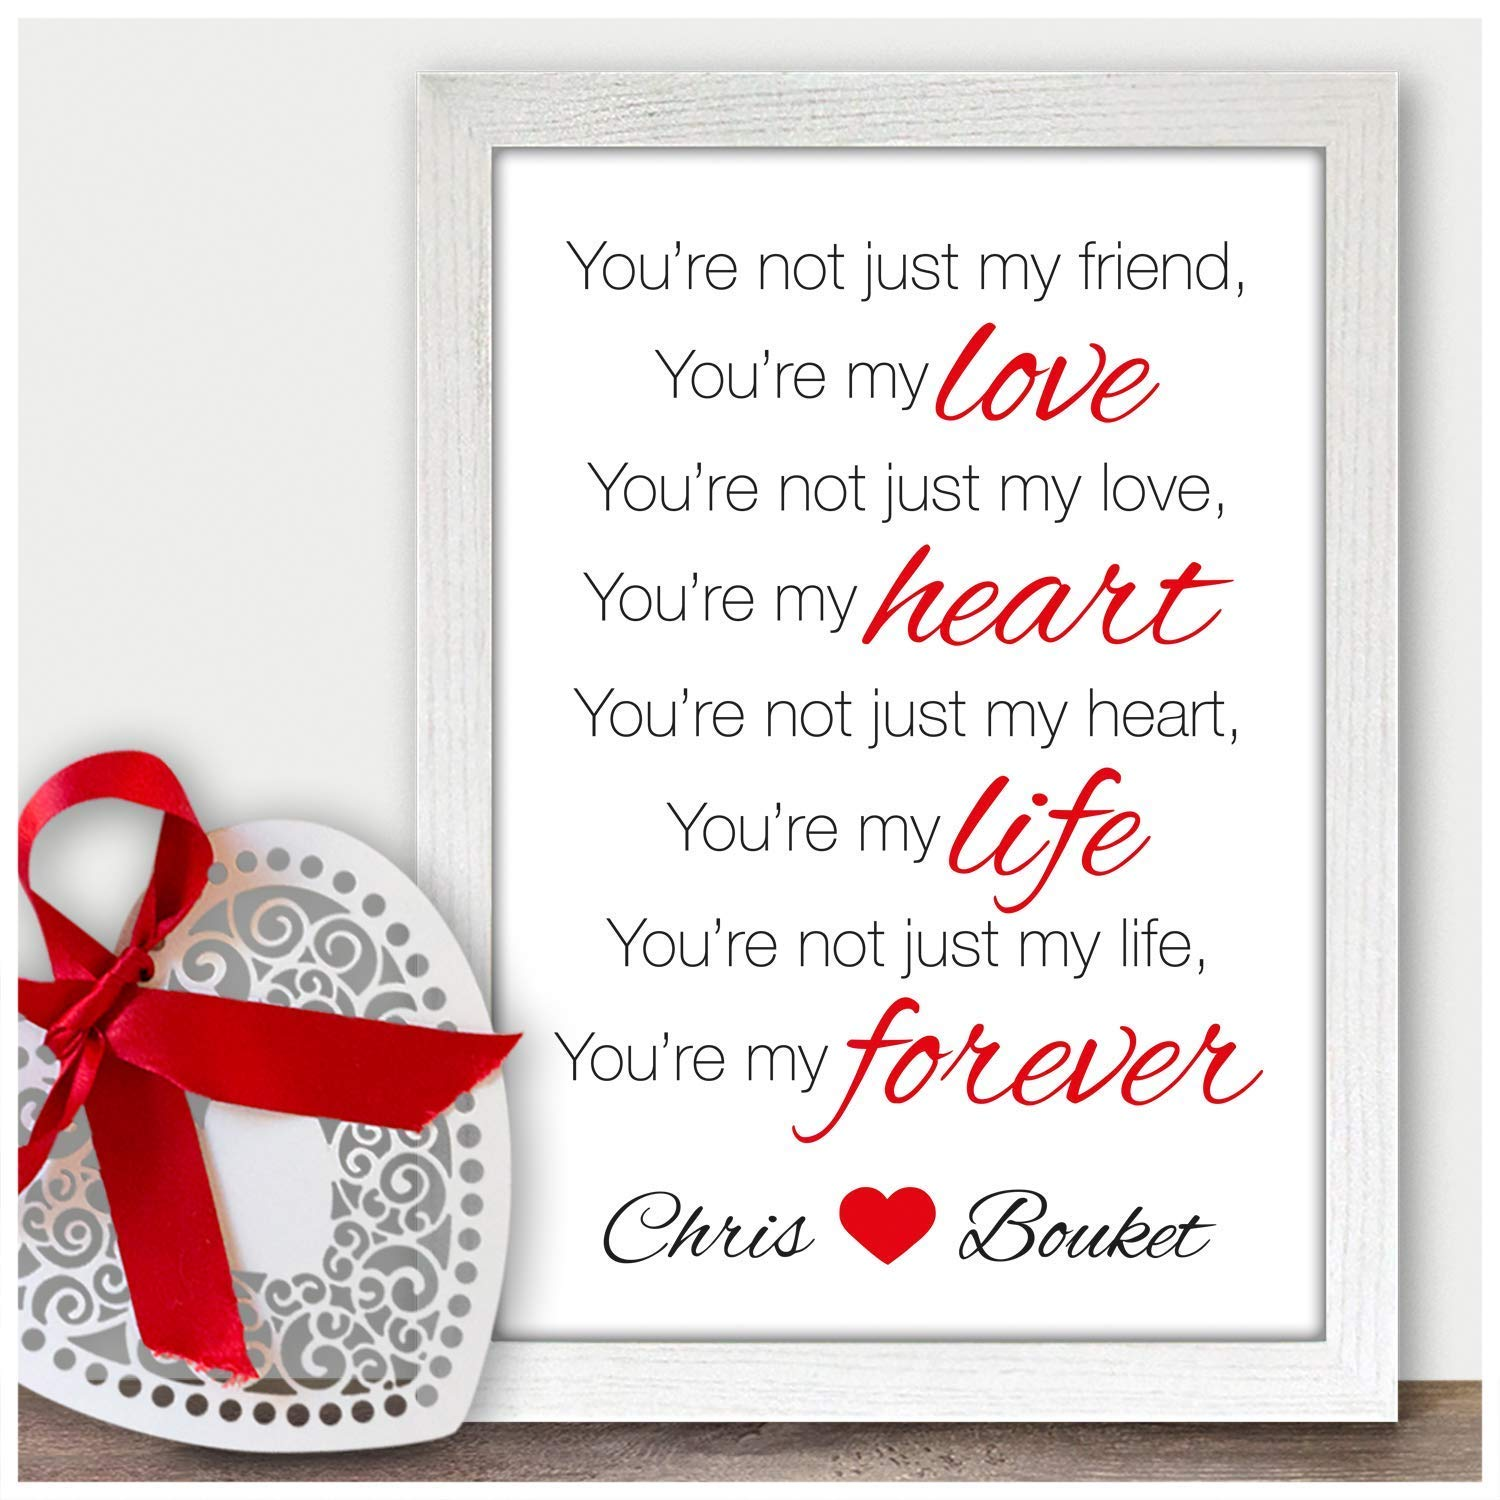 Personalised Love Poem Print Gifts For Wife Girlfriend Partner Couples Fiancee Birthday Her